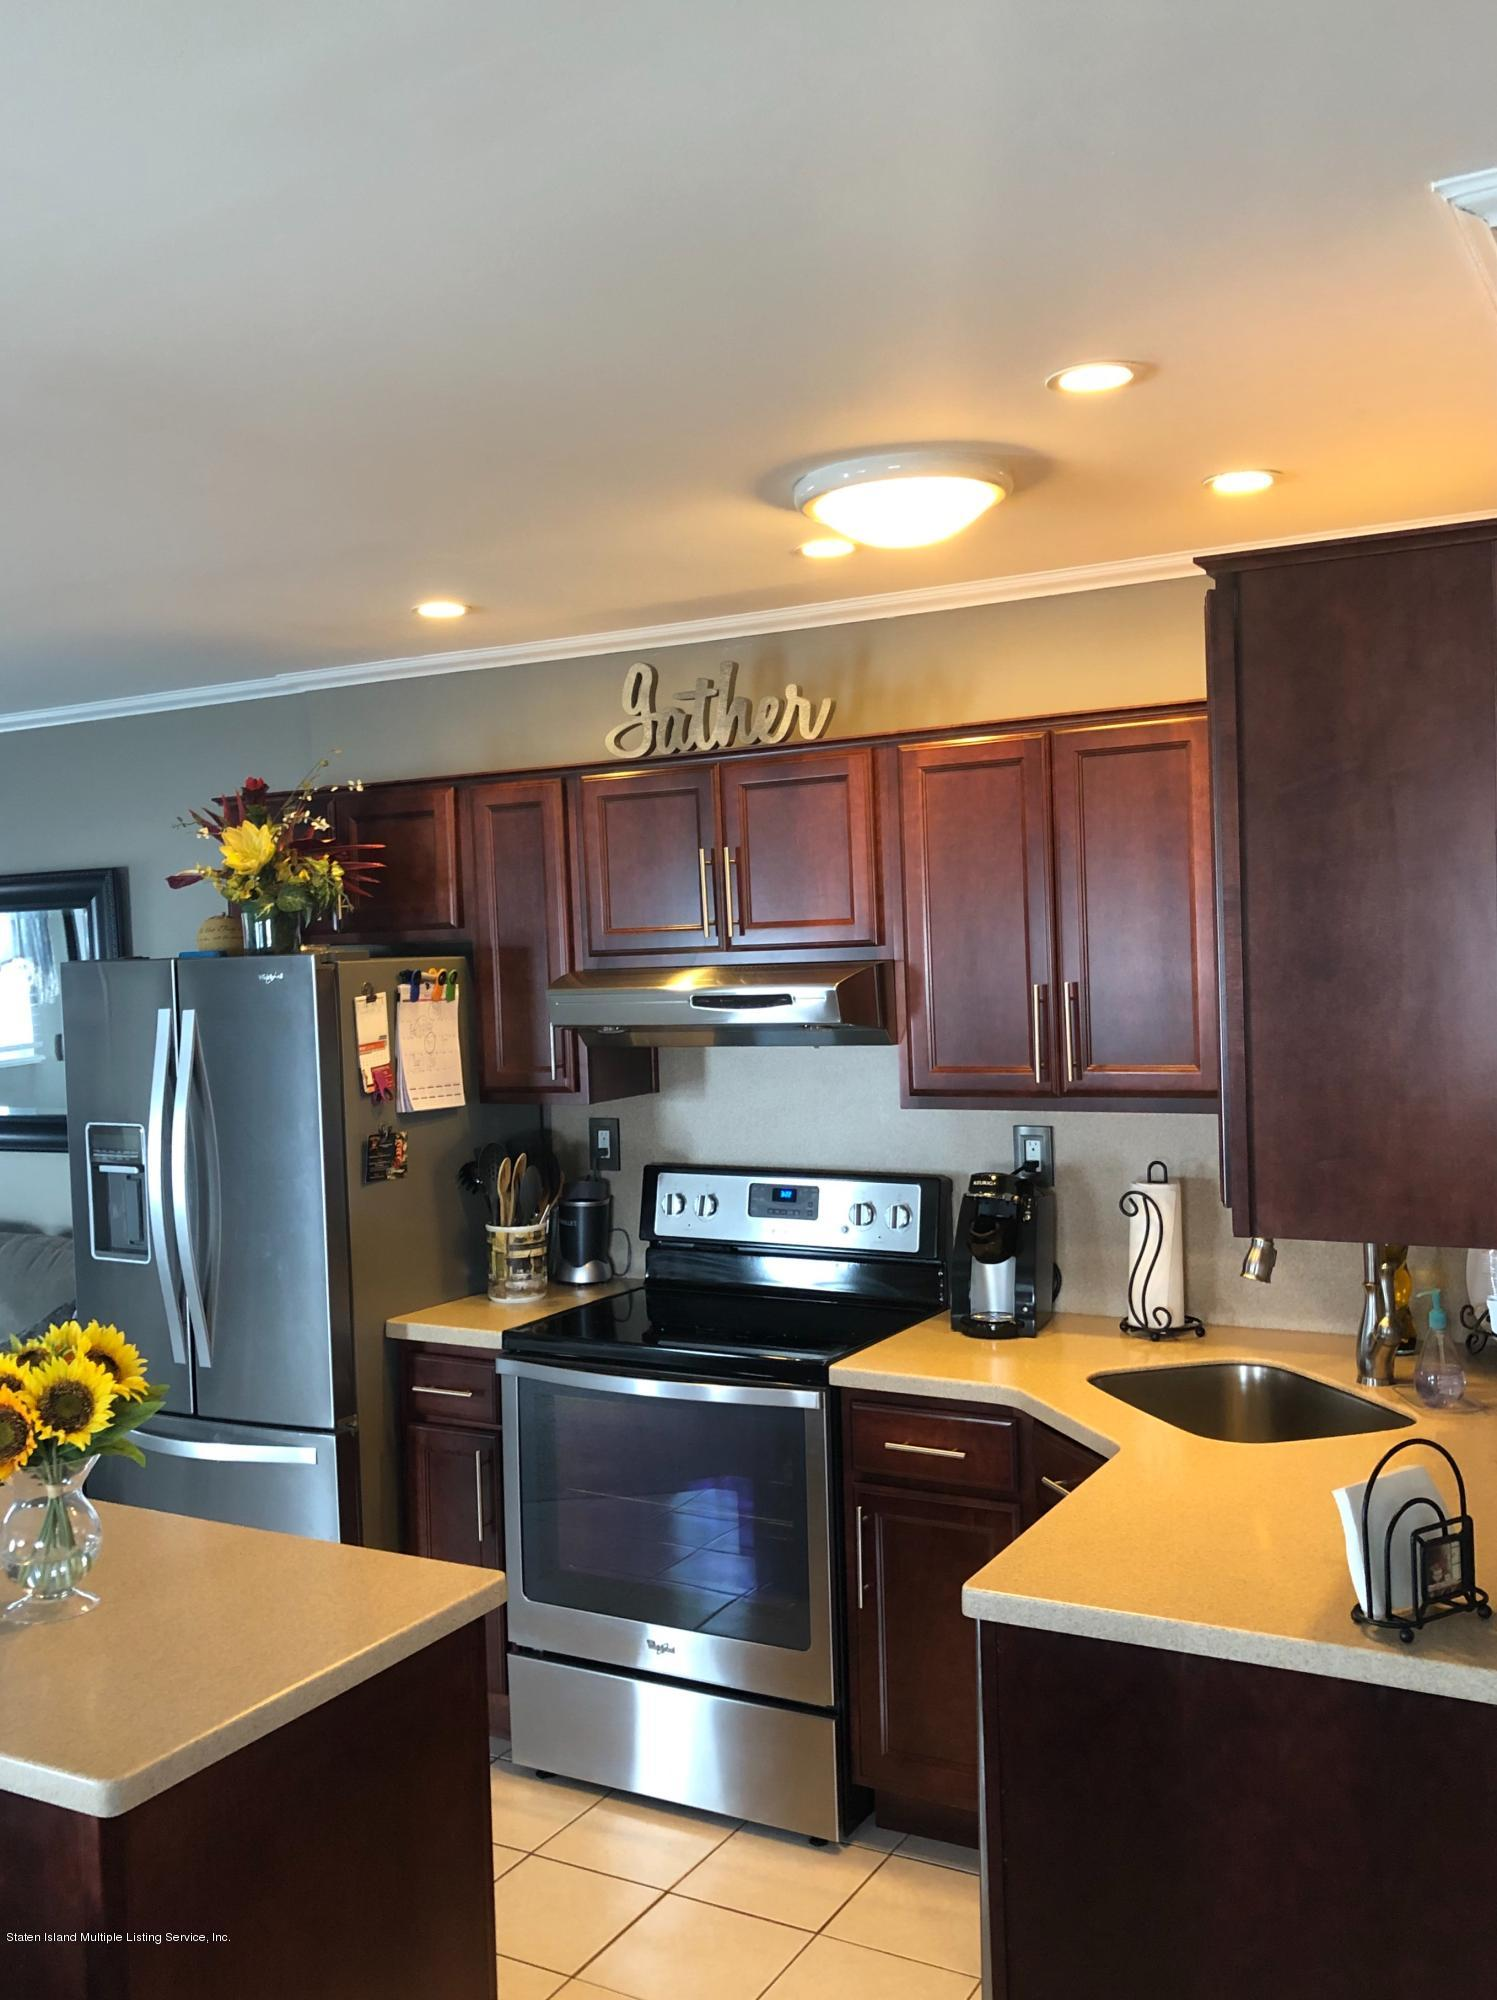 Single Family - Semi-Attached 93 Middle Loop Road  Staten Island, NY 10308, MLS-1131446-4